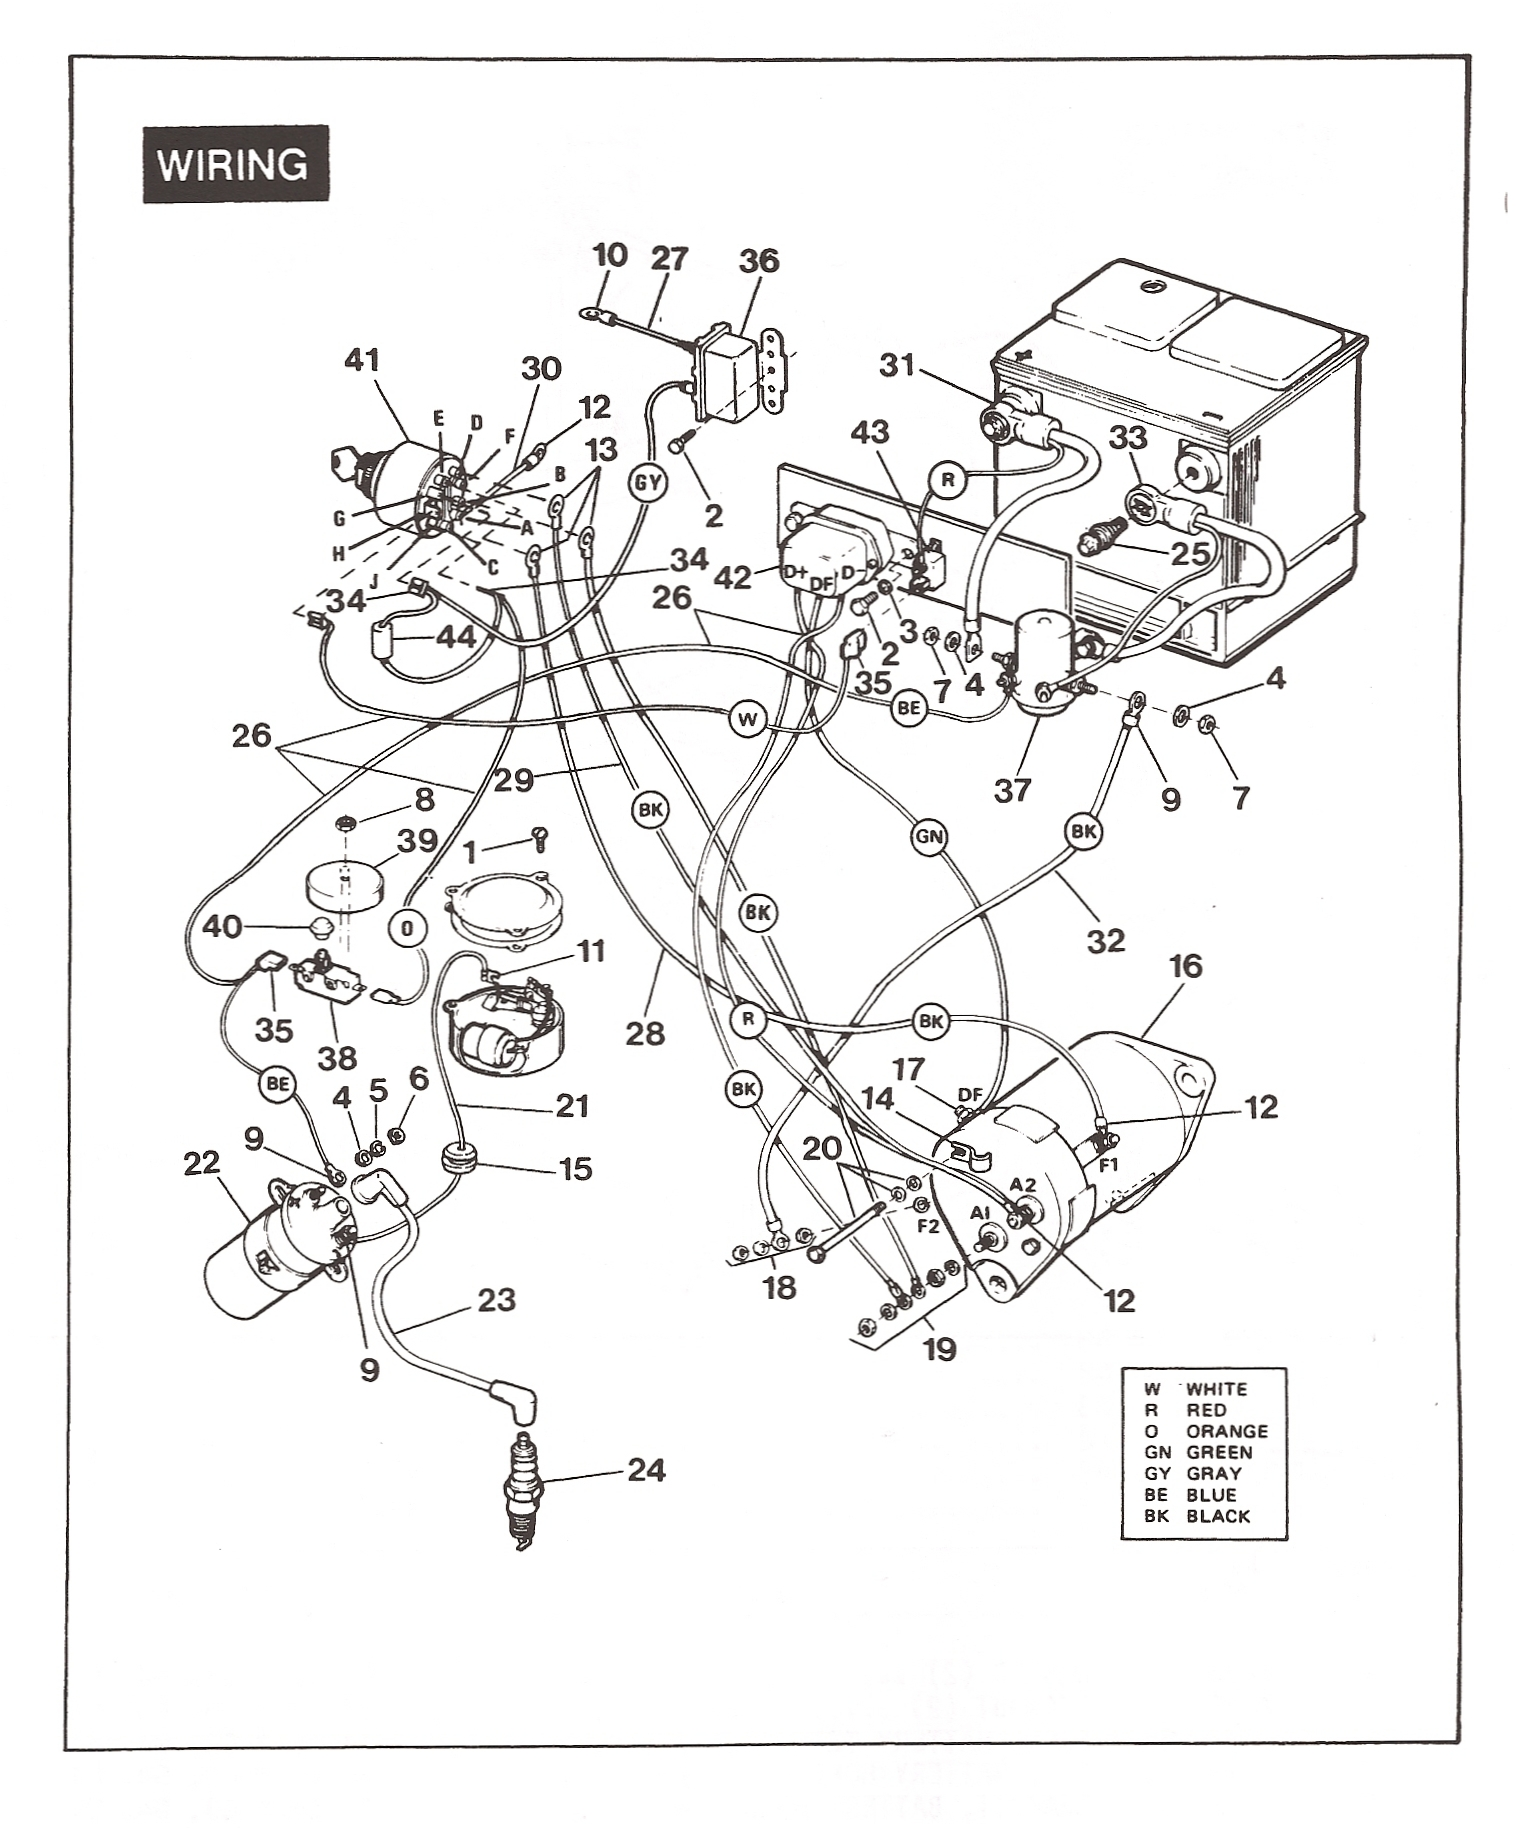 82_86_Columbia_Harley?resize=665%2C802 wiring diagram for columbia par car 48 volt readingrat net Club Car Wiring Diagram Gas Engine at bayanpartner.co